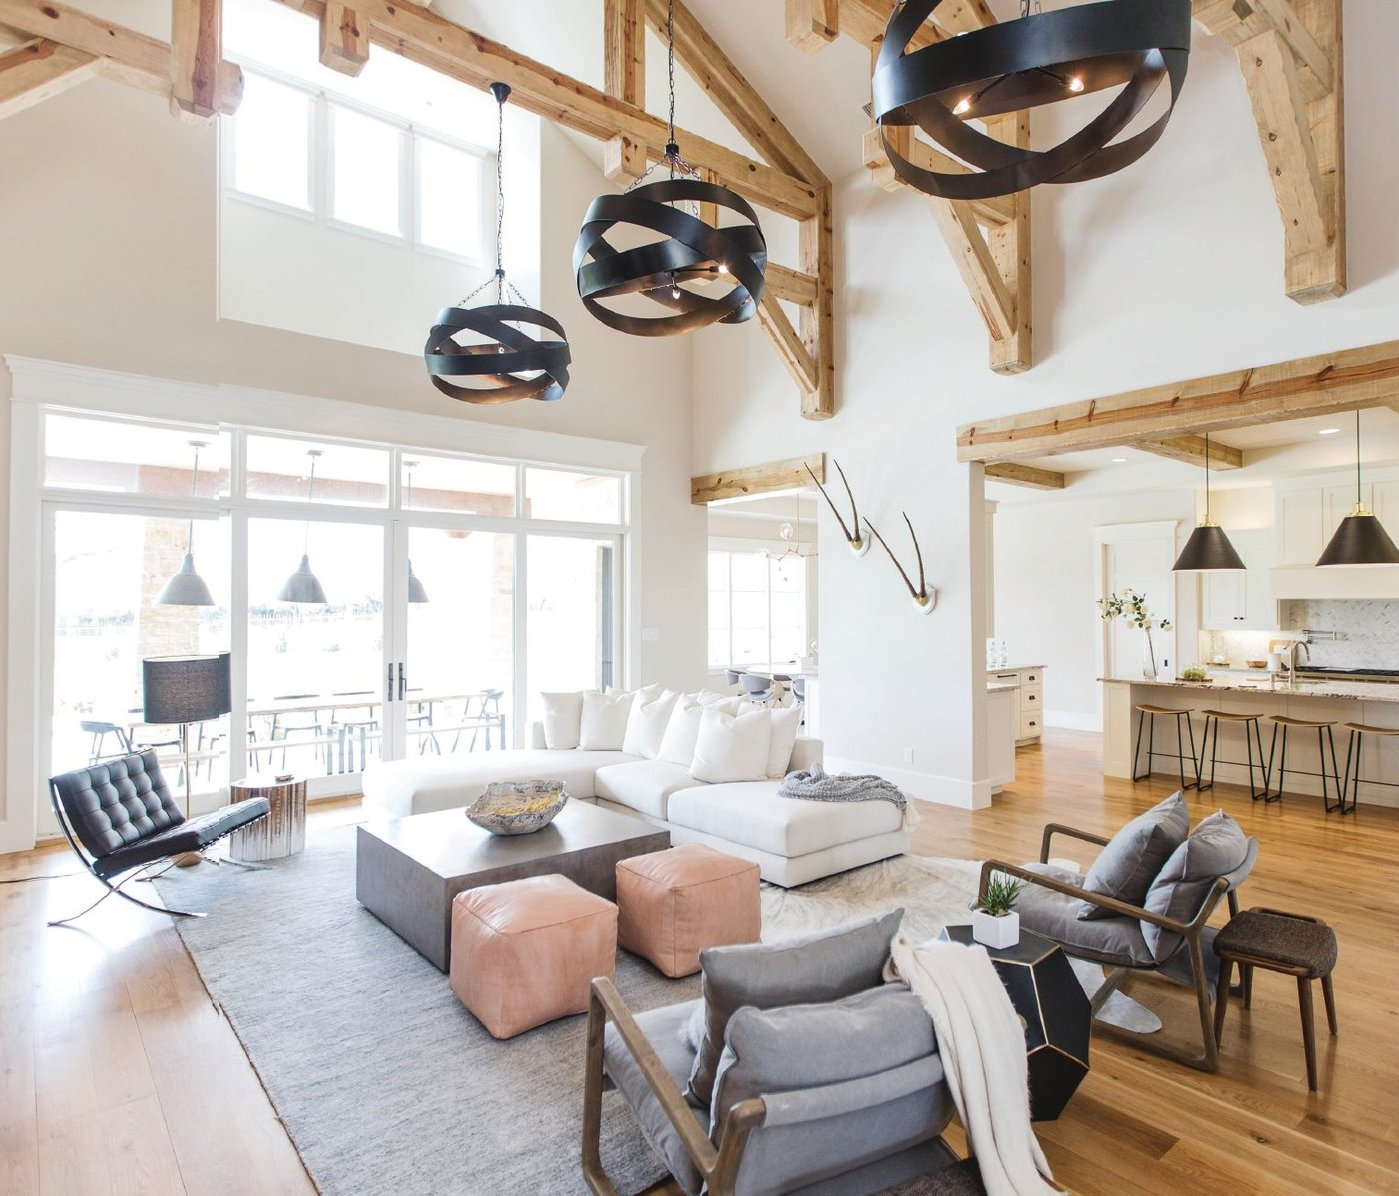 For designer Ginger Curtis, the great room posed one of the biggest (literally) challenges. A trio of sculptural metal pendants solved the lighting situation. Custom furniture, including a sectional, anchors the room's center without blocking views of the patio and kitchen